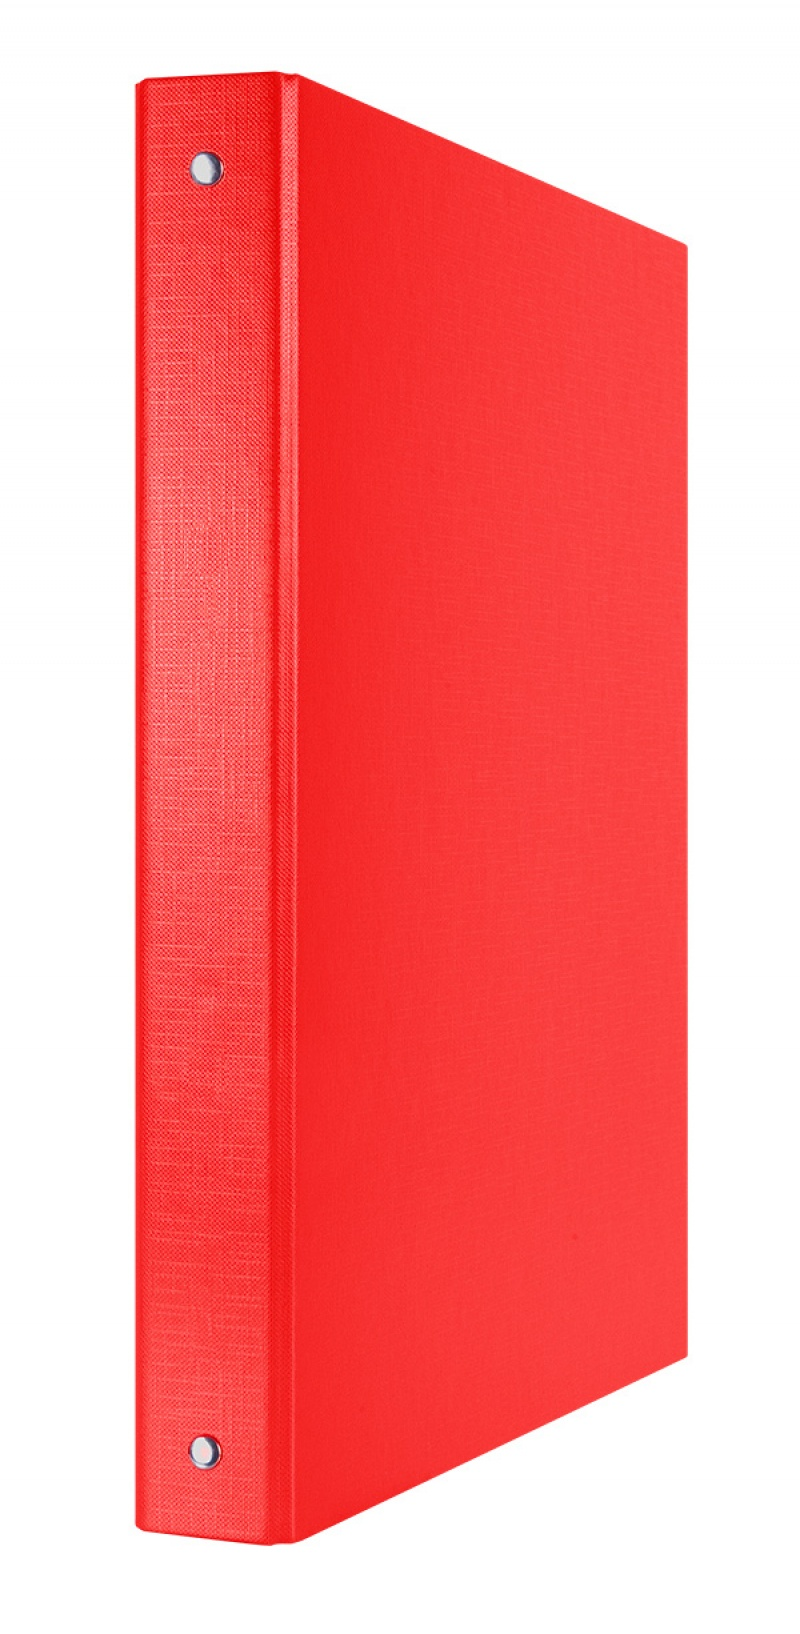 Ring Binder DONAU, PP, A4/4R/30mm, red